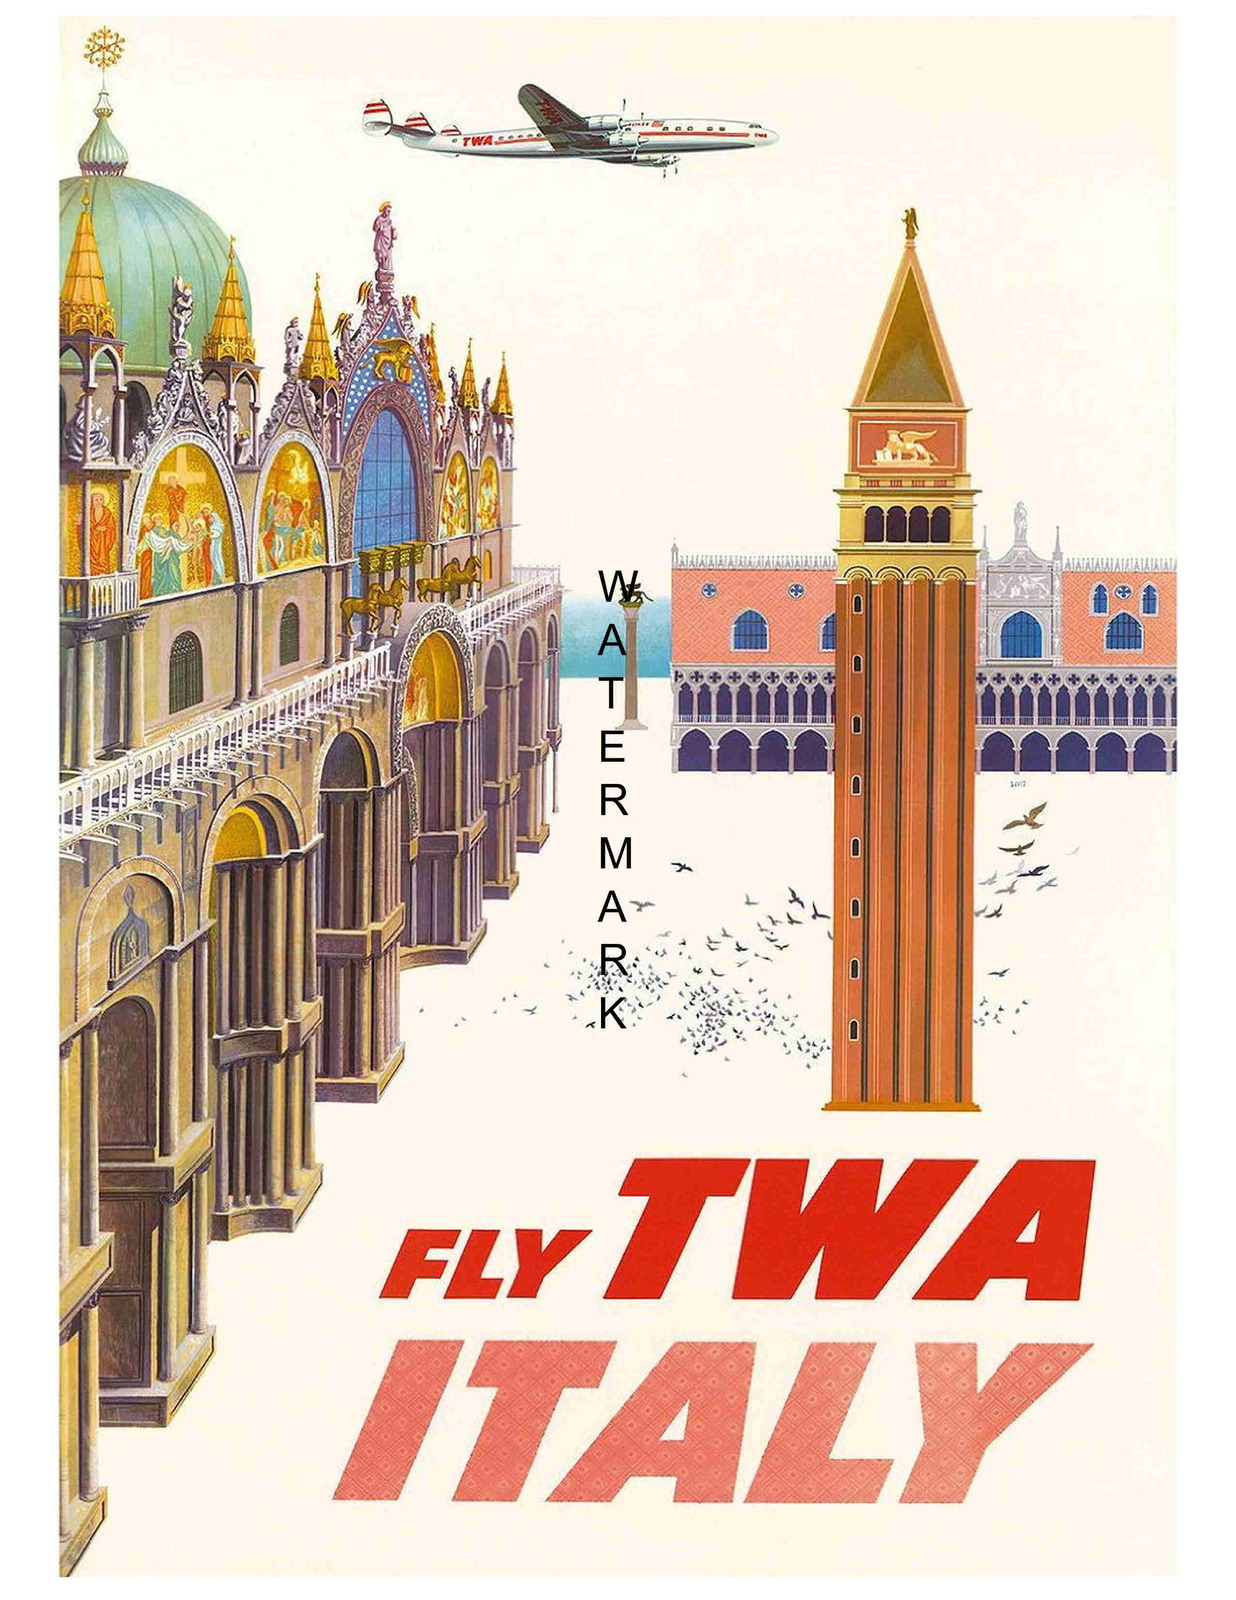 Vintage TWA Flights to Israel Airline Poster A3 Print